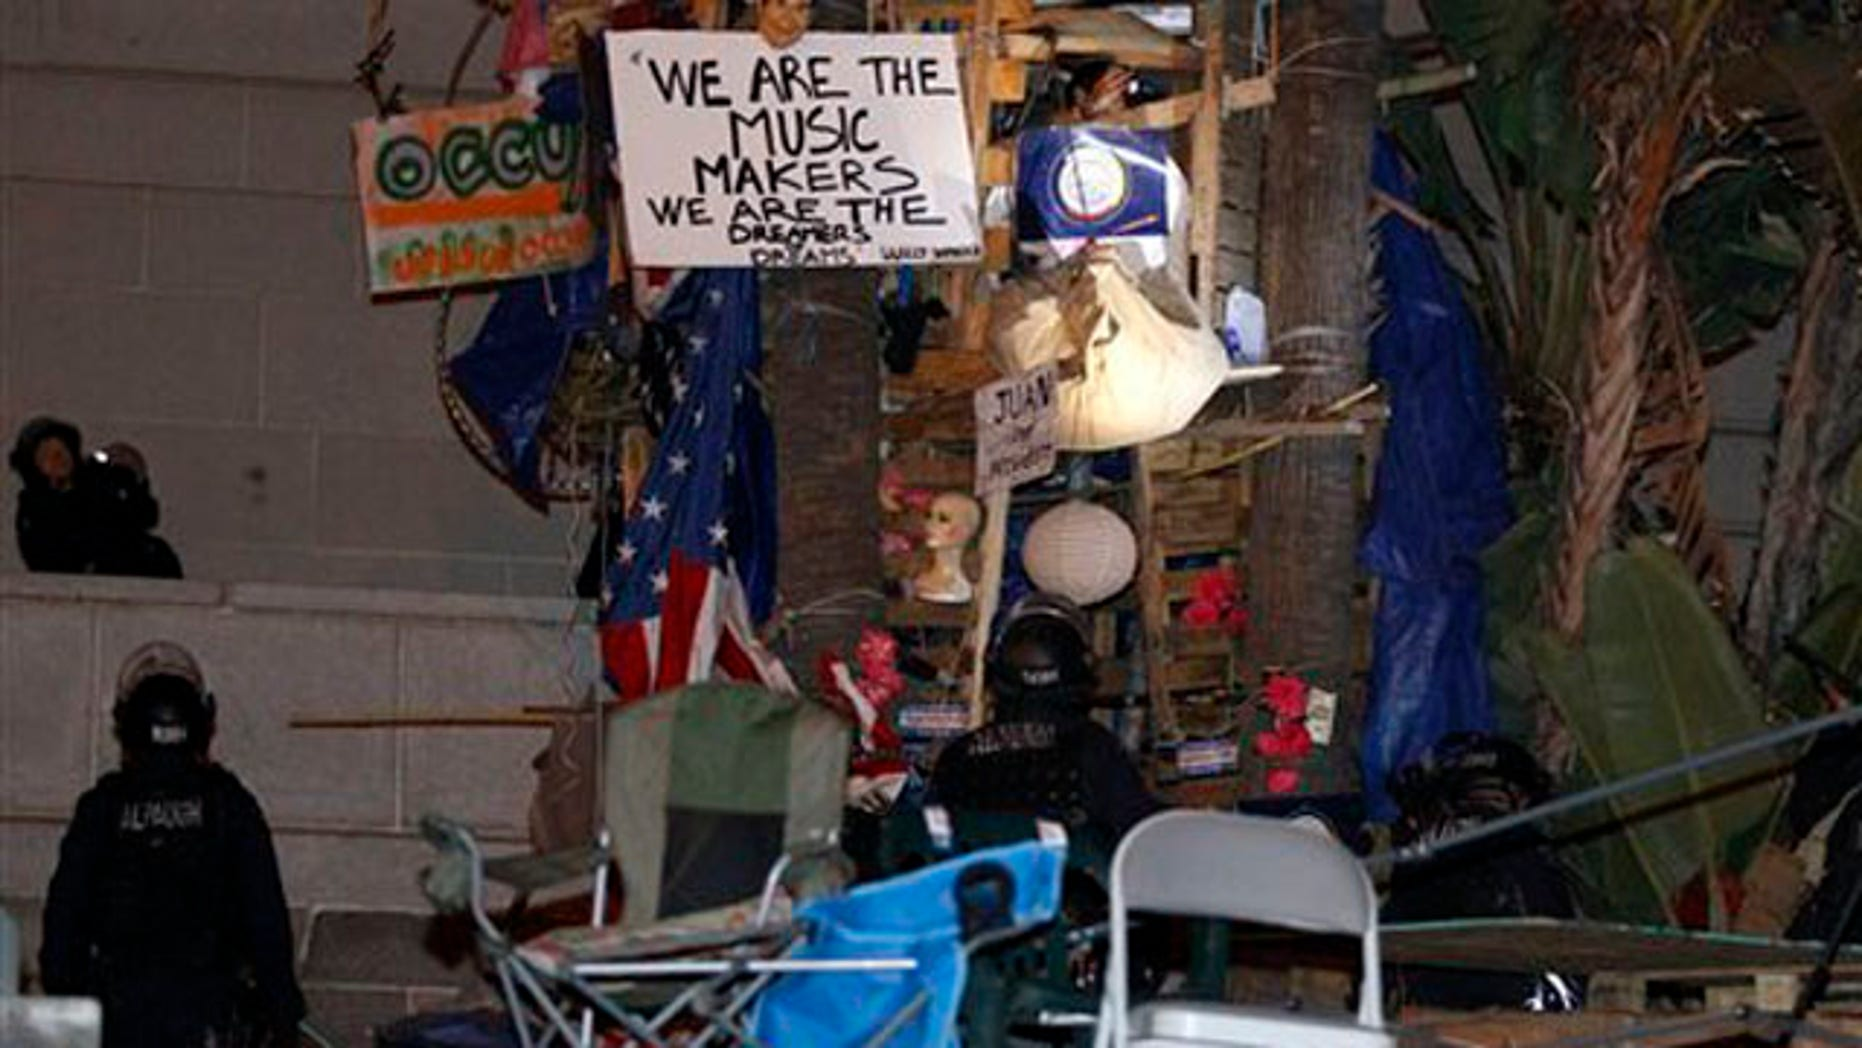 November 30, 2011: Police prepare to remove a structure at the Occupy Los Angeles encampment outside City Hall in Los Angeles .